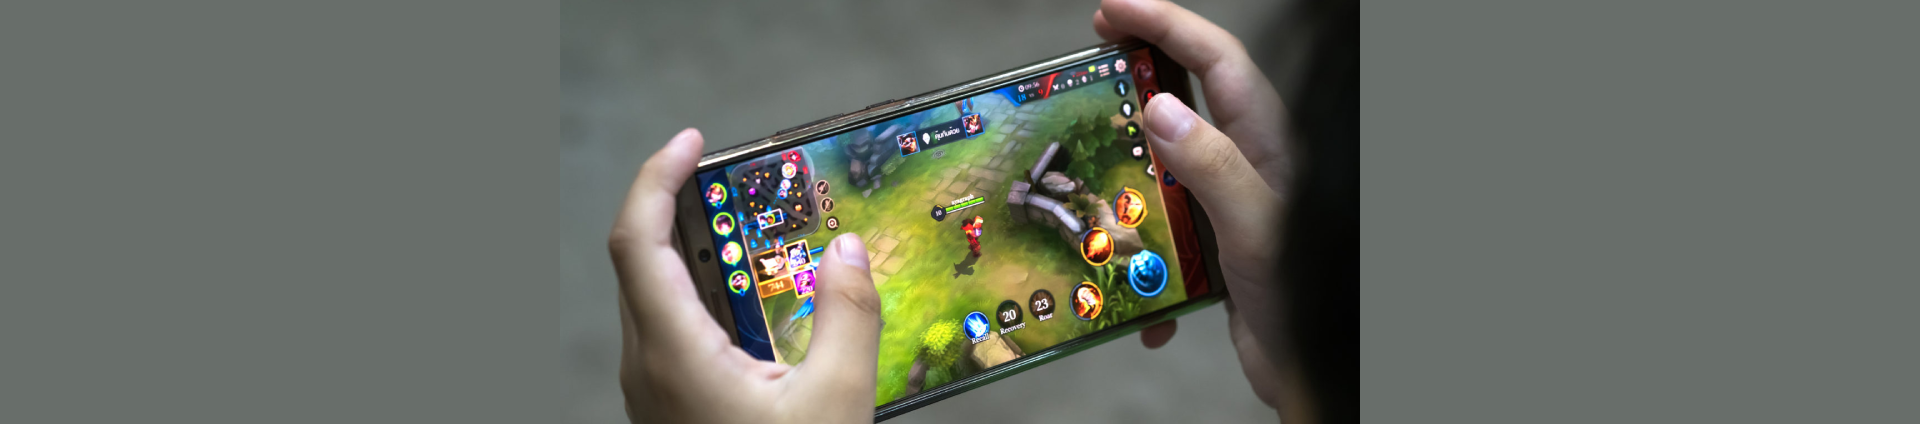 Person Playing a Mobile Game